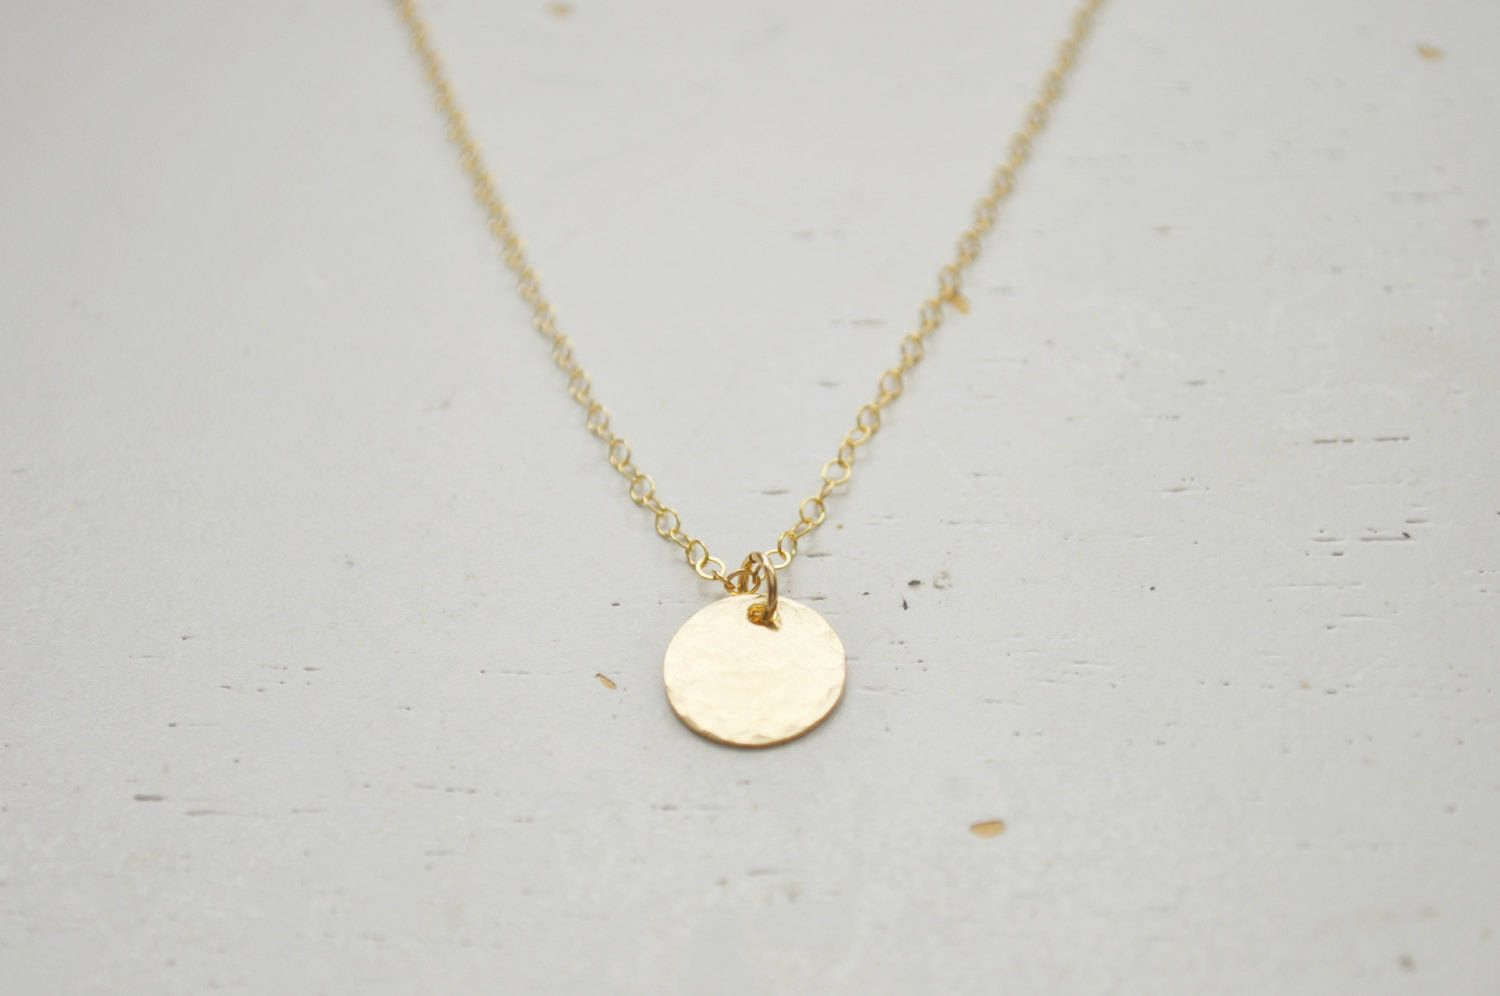 Gold disc coin necklace small hammered gold filled round charm gold disc coin necklace small hammered gold filled round charm circle pendant classic teacher aloadofball Image collections